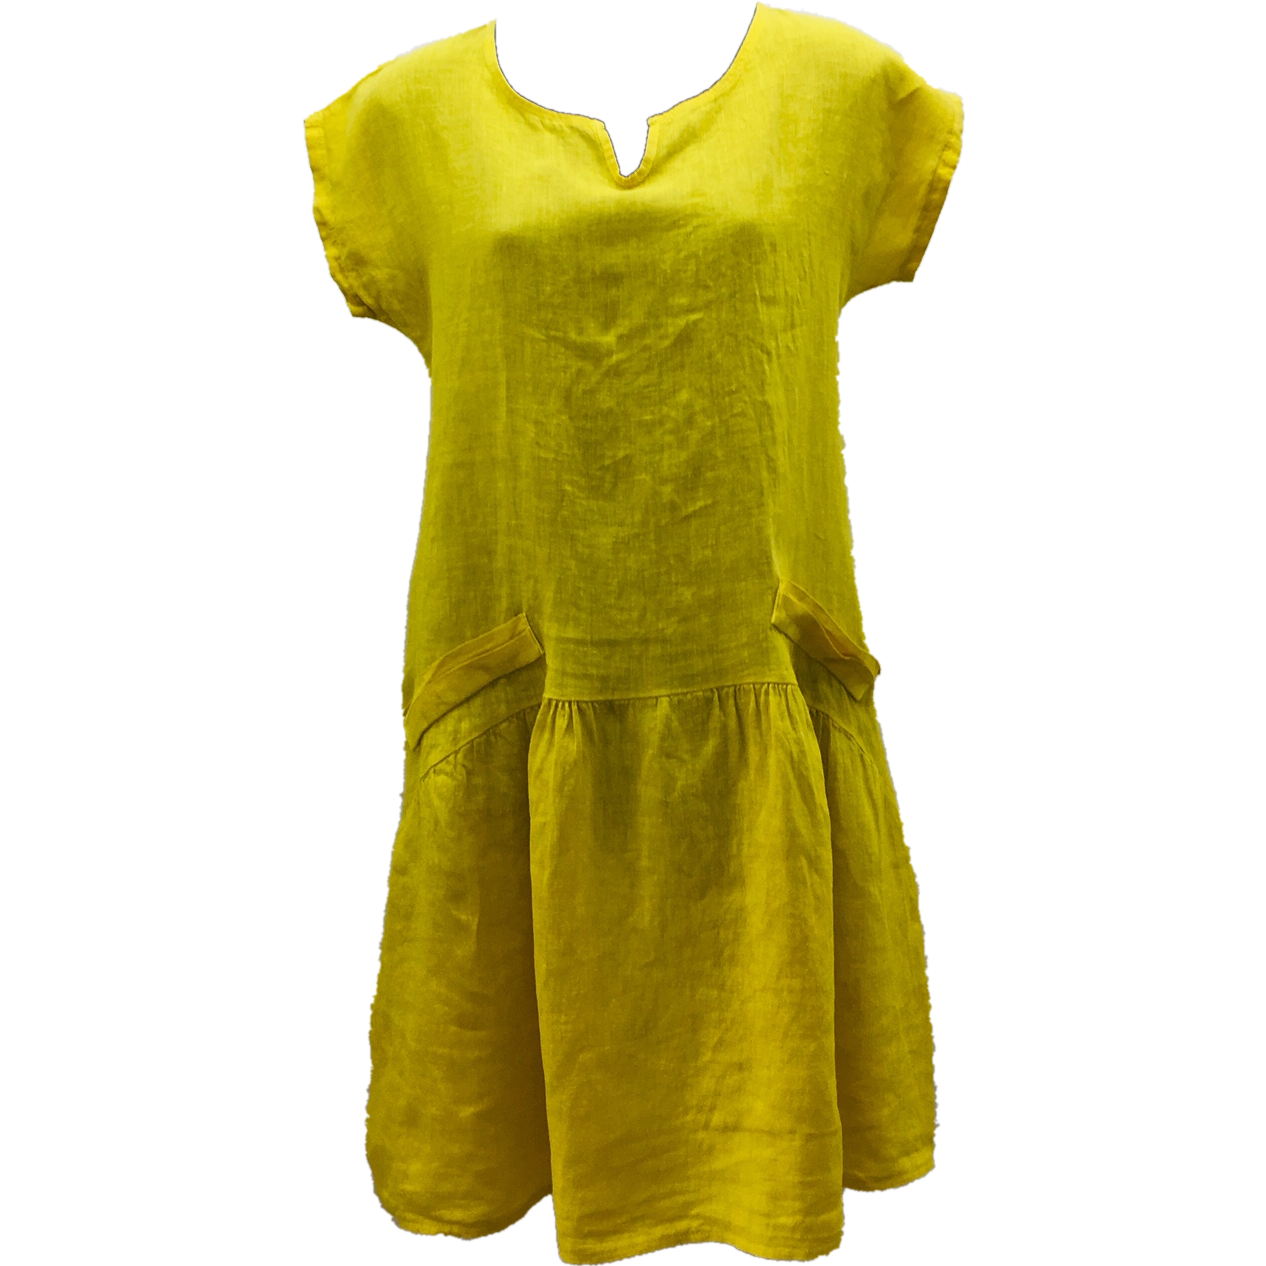 Talia Benson 100% Linen Dress in Yellow